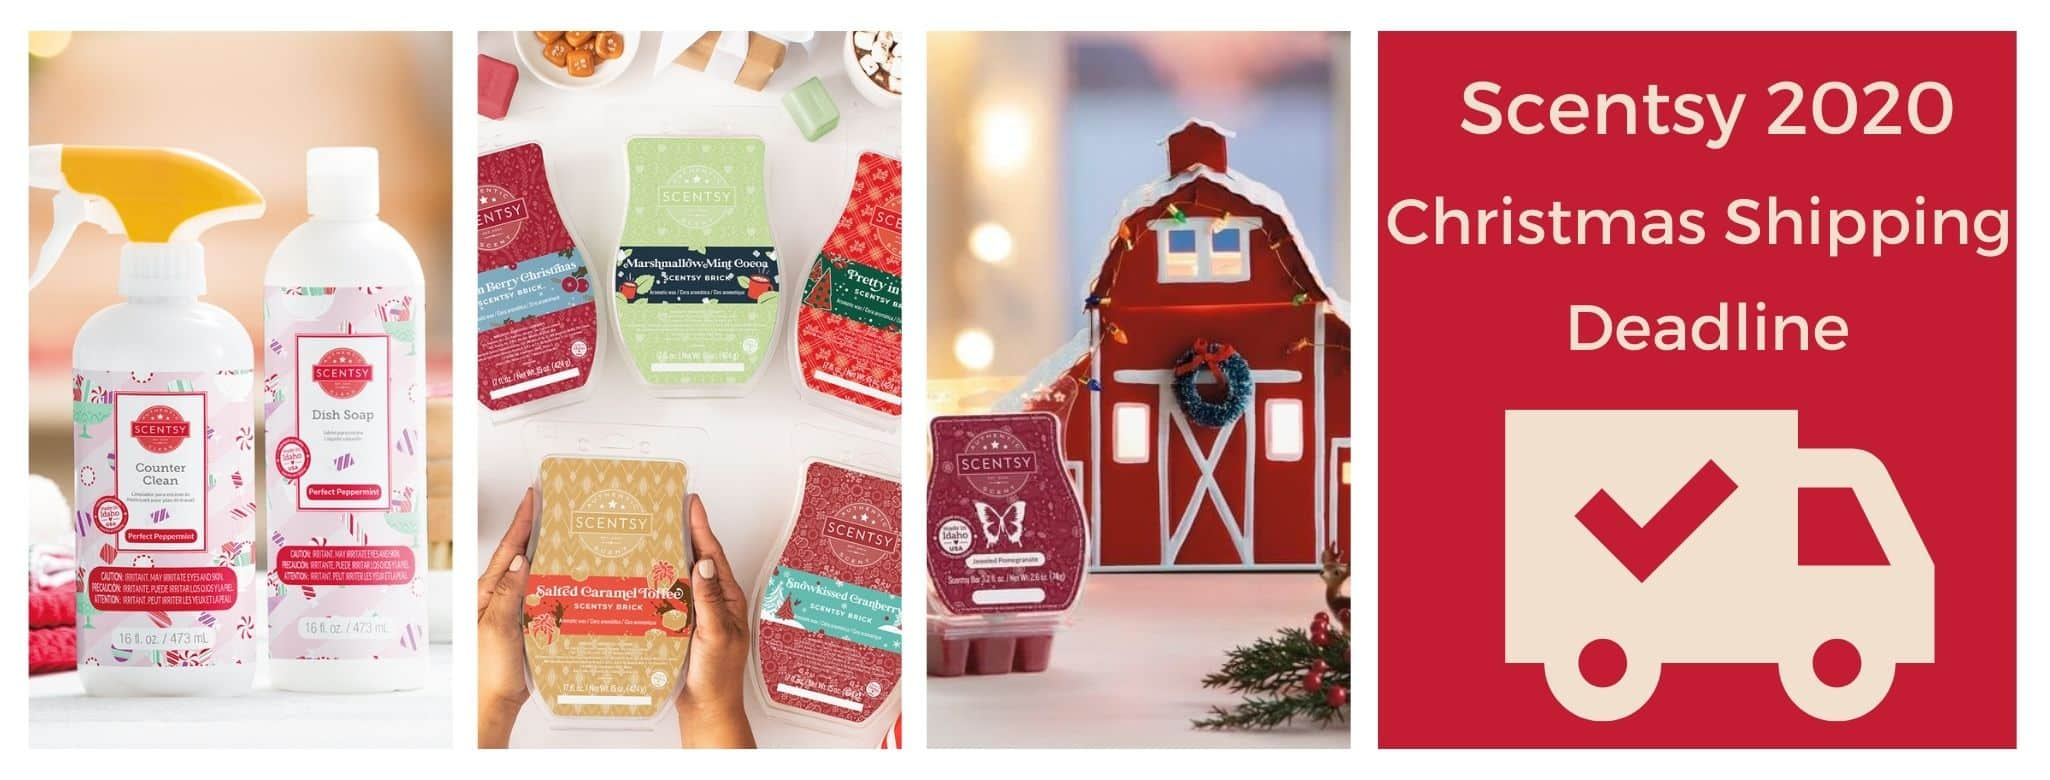 SCENTSY CHRISTMAS 2020 SHIPPING DEADLINE